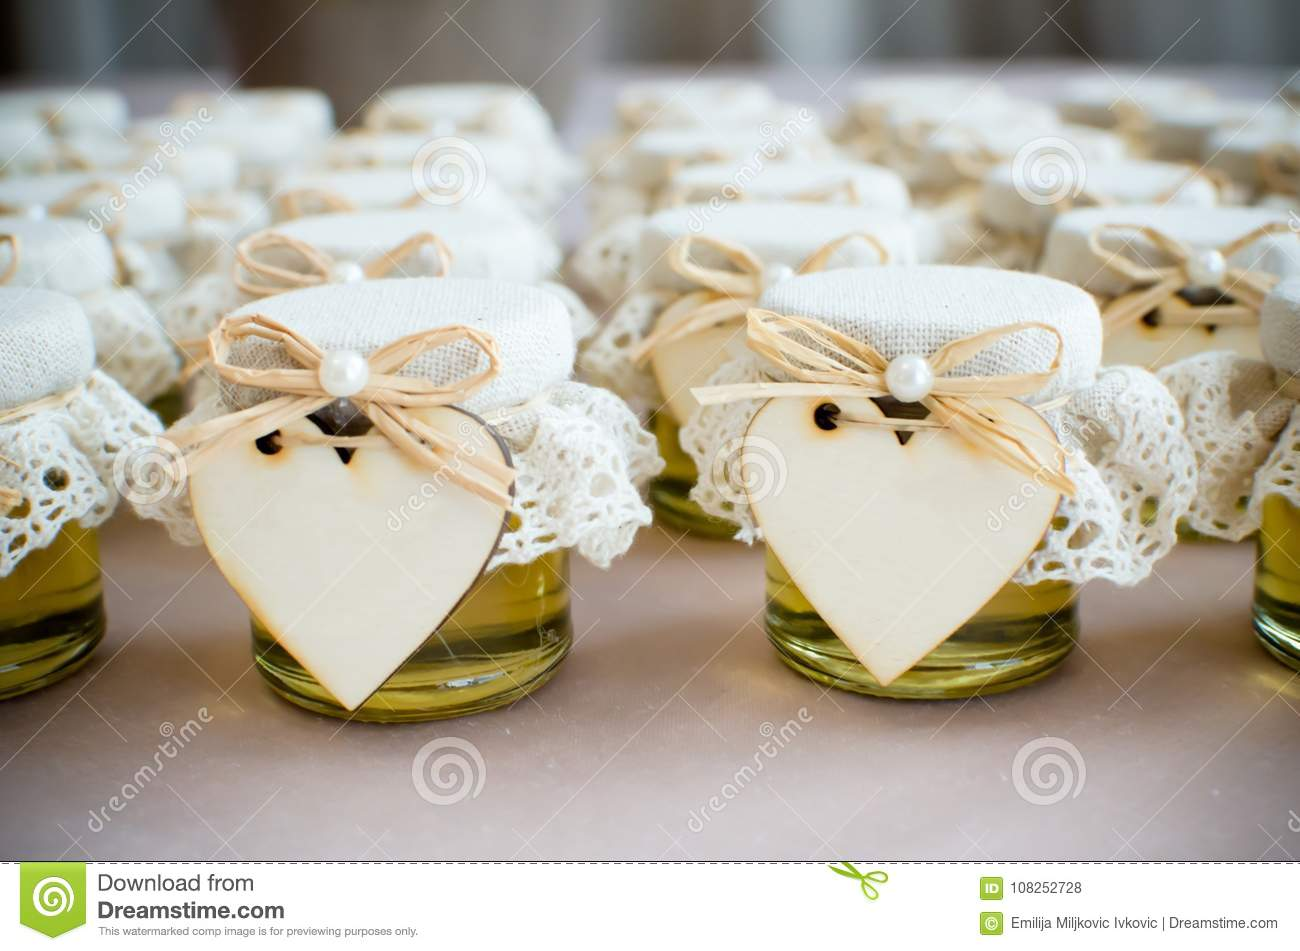 Decorative honey glass jar stock photo. Image of decoration - 108252728